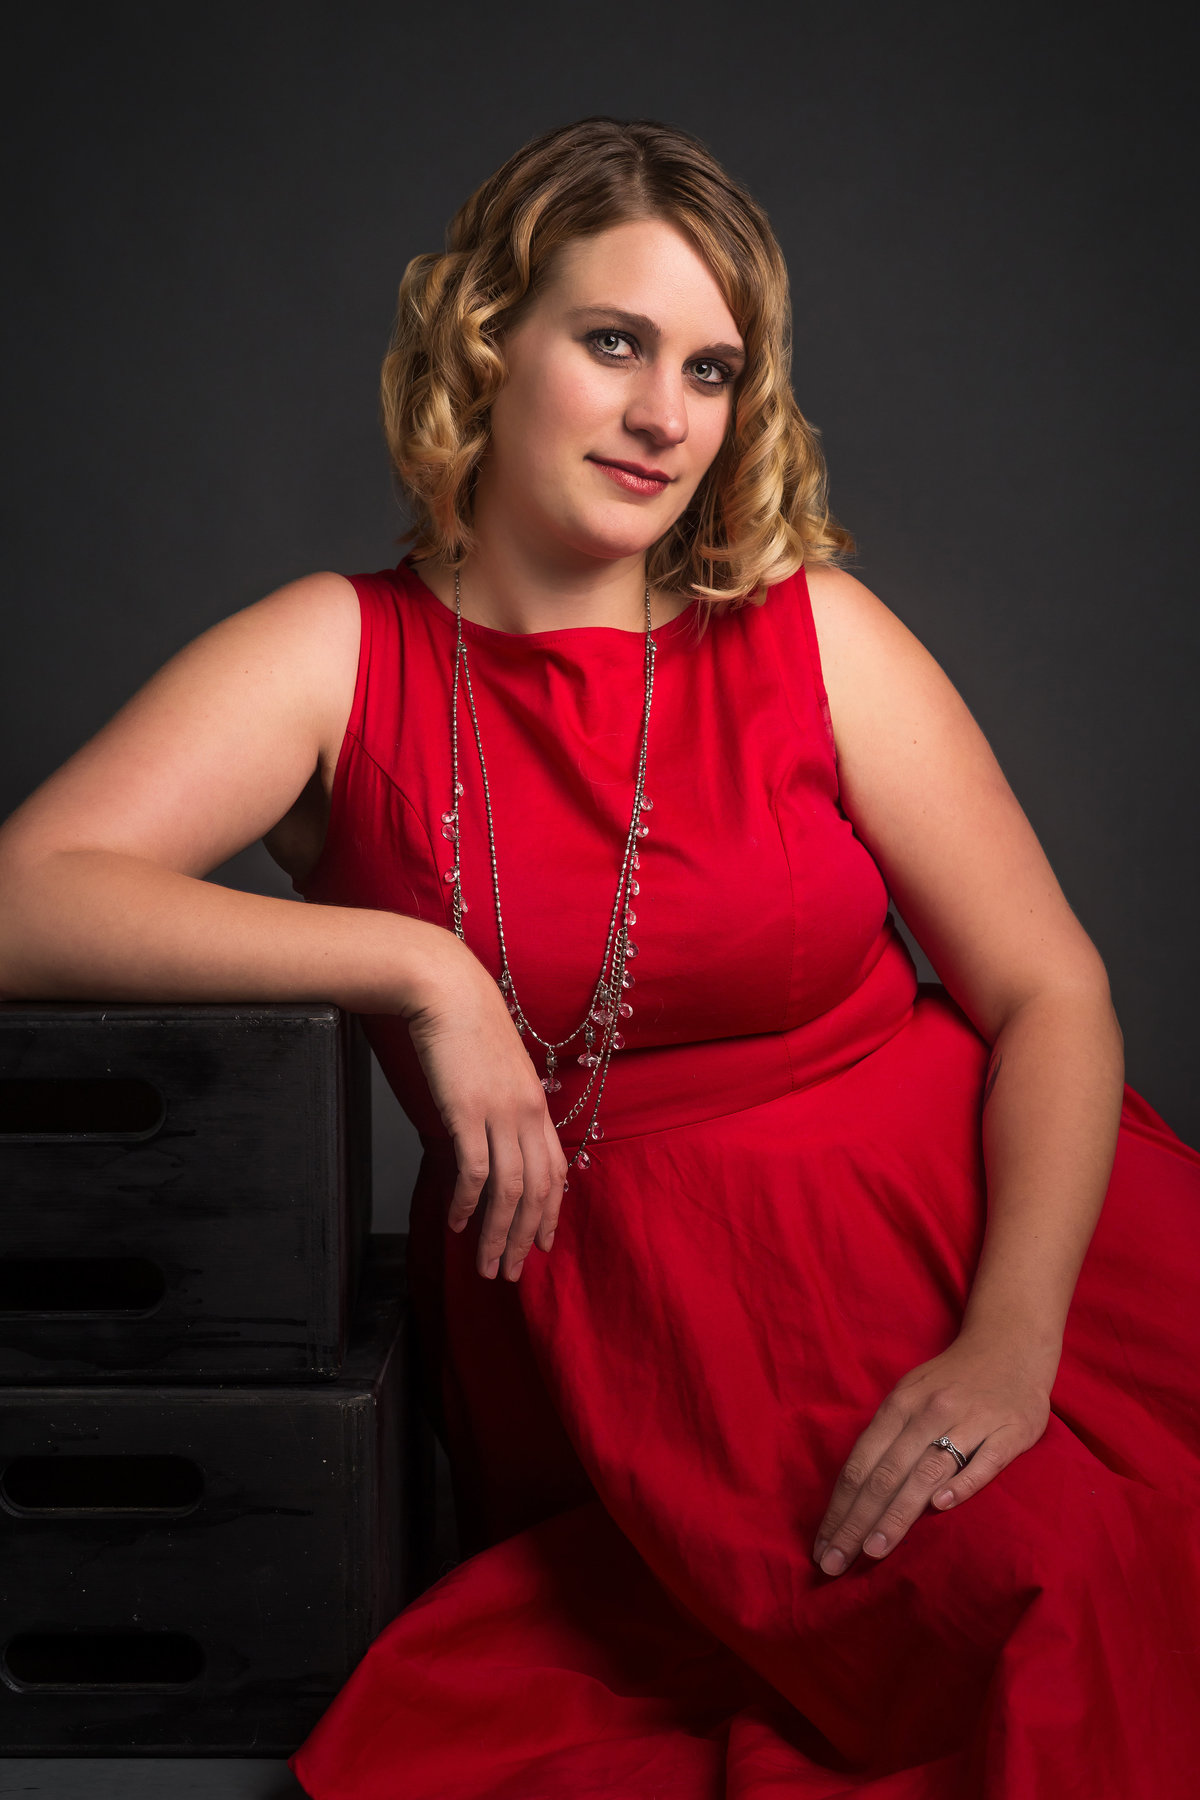 Modern Beauty and Glamour Portraits. Kansas City, Lee's Summit, Studio Photography,